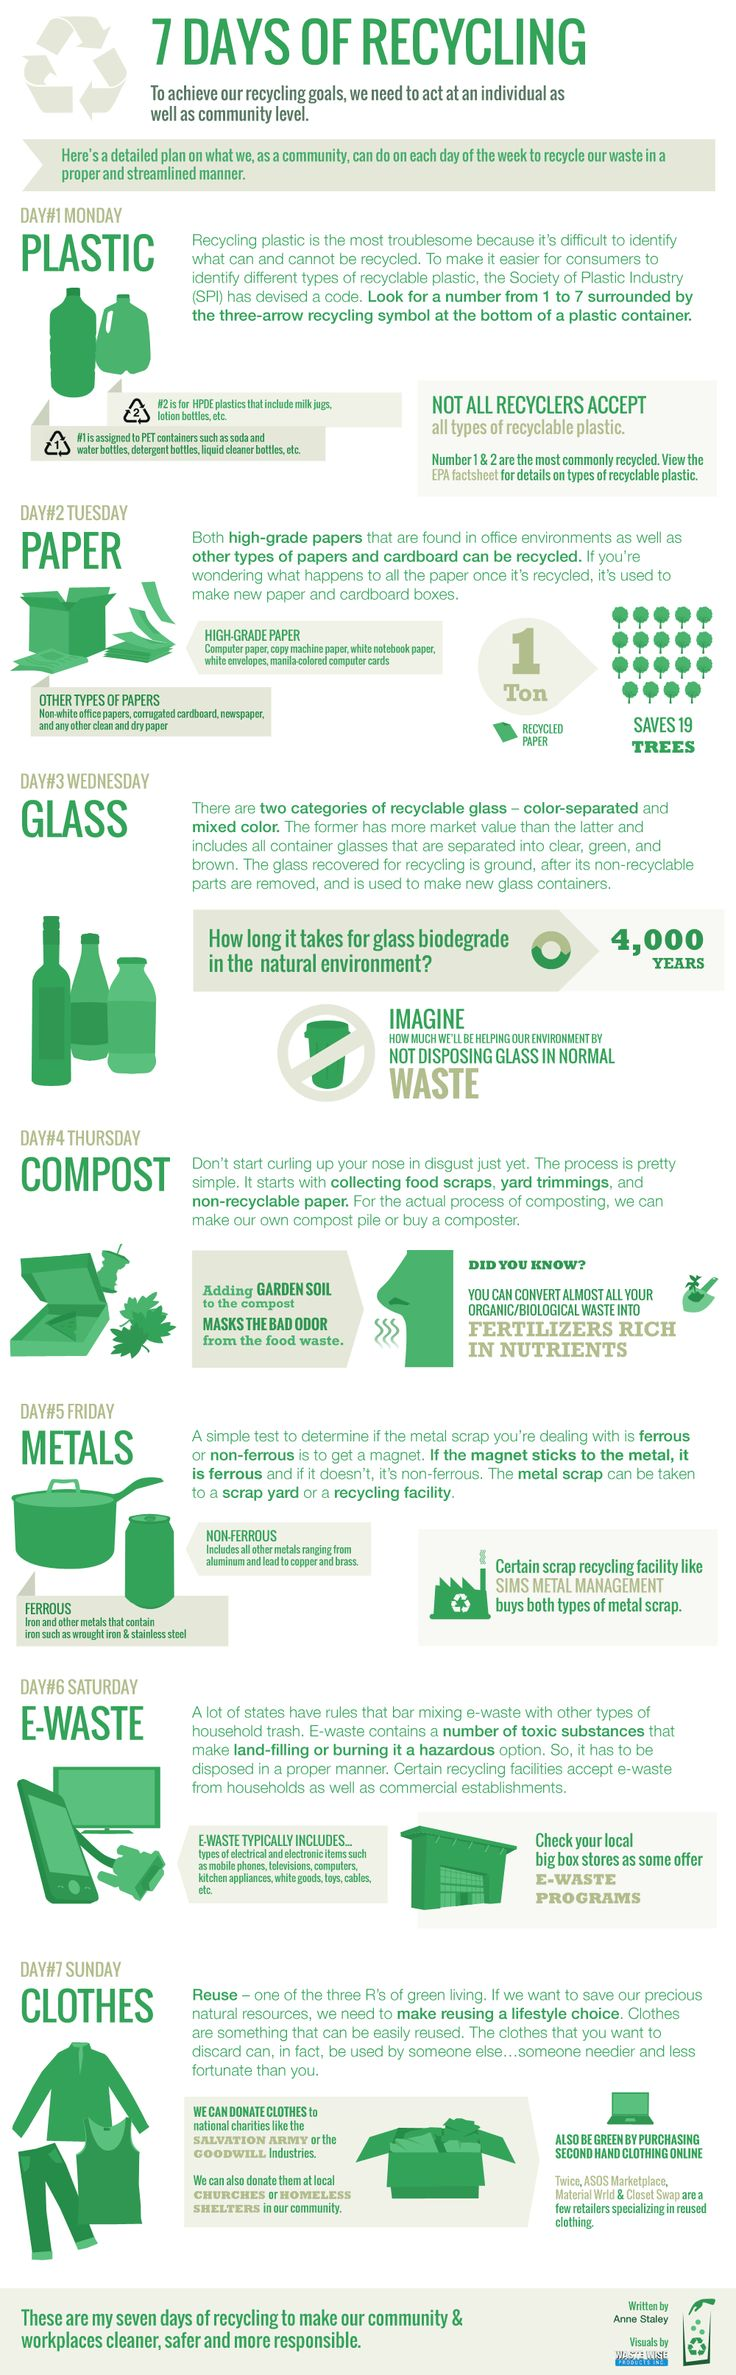 7 Days of #Recycling; plan for community/neighborhood & workplaces.